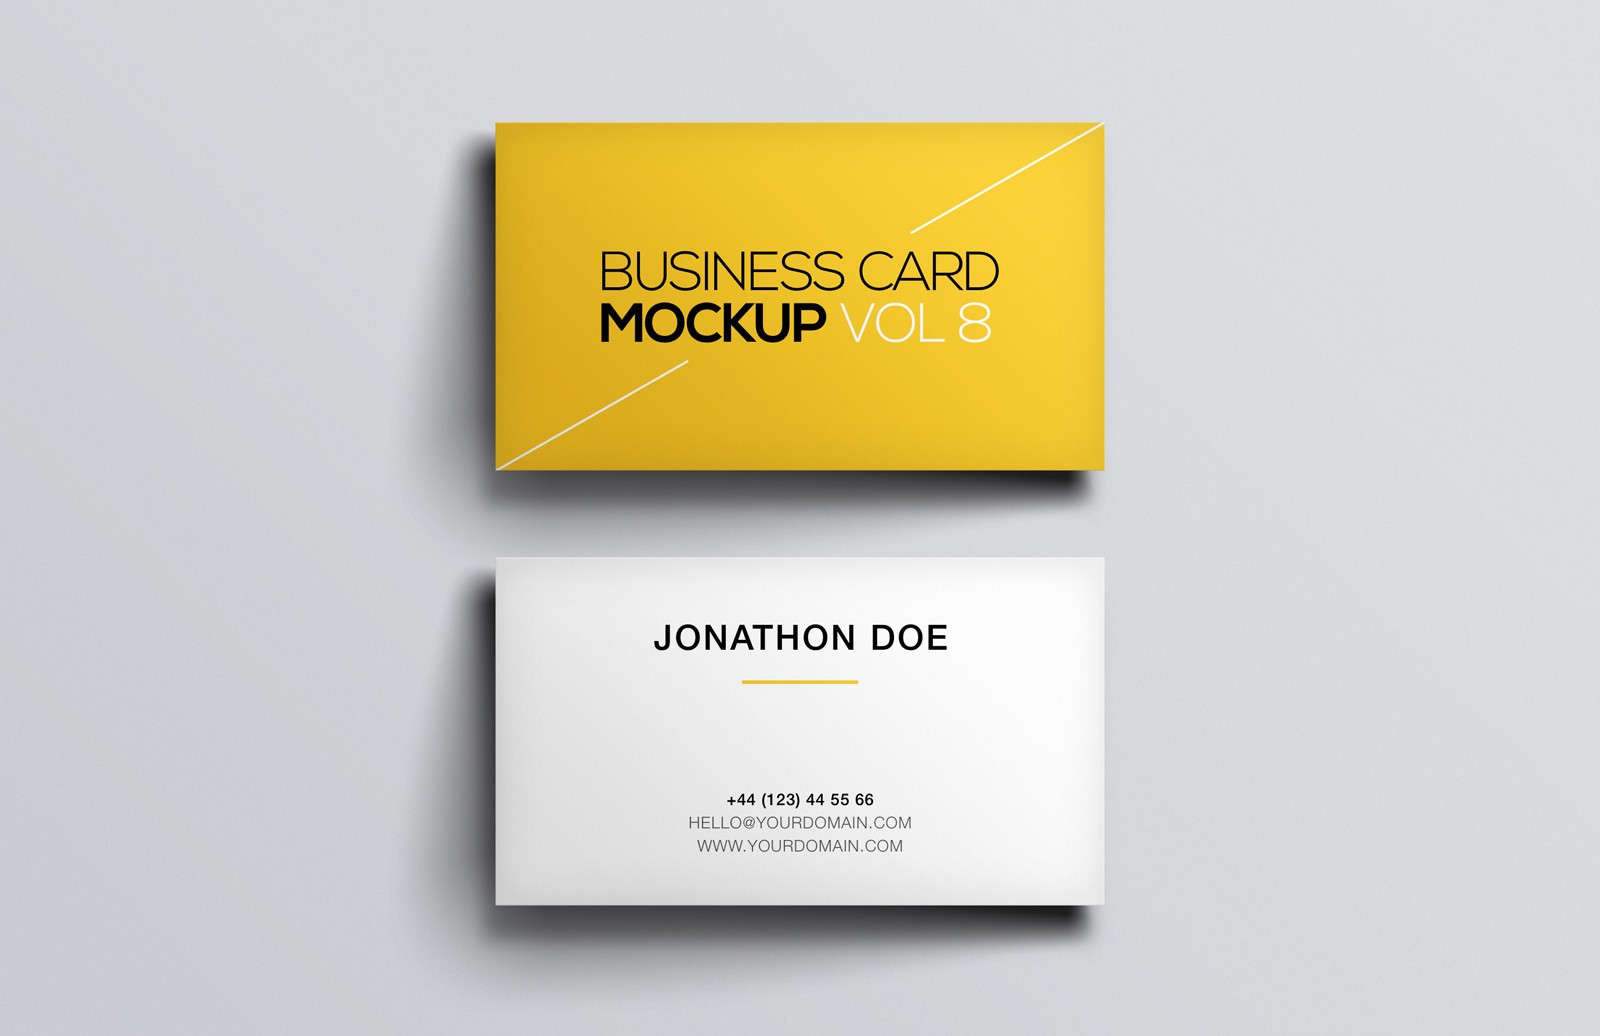 Business Card Mockup Vol 8 Medialoot